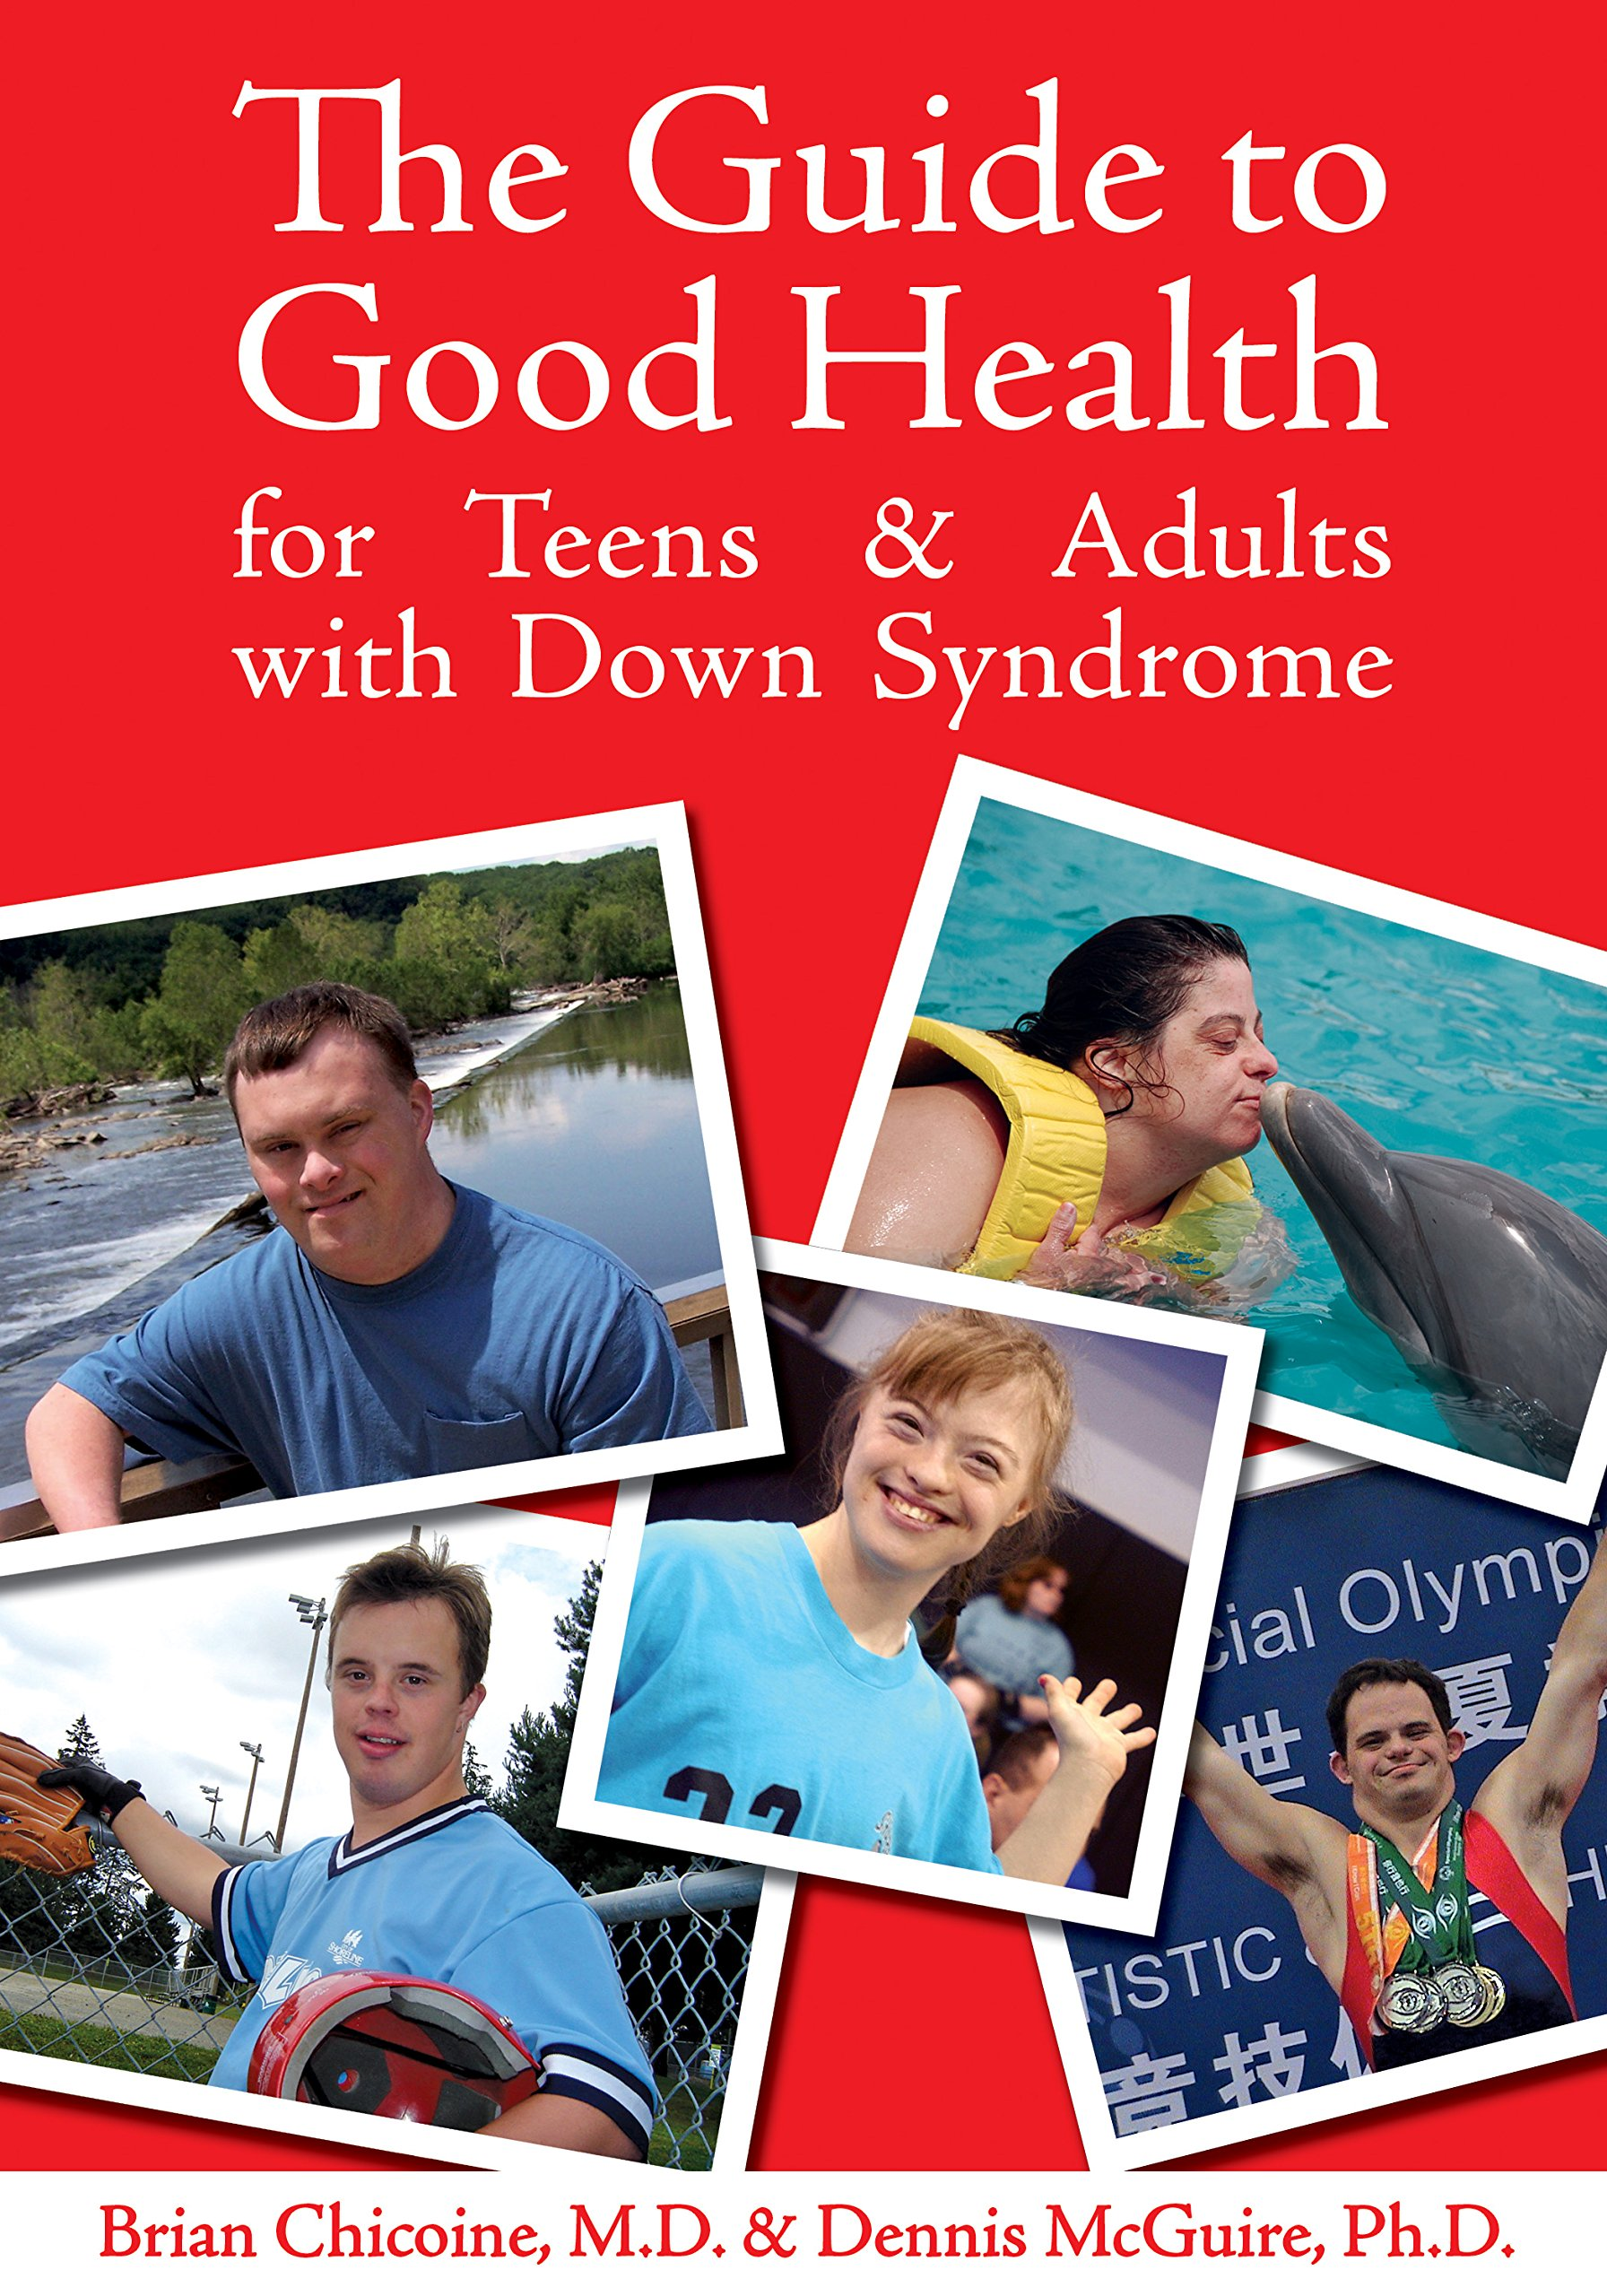 the guide to good health for teens adults with down syndrome brian chicoine dennis mcguire 9781890627898 books amazonca